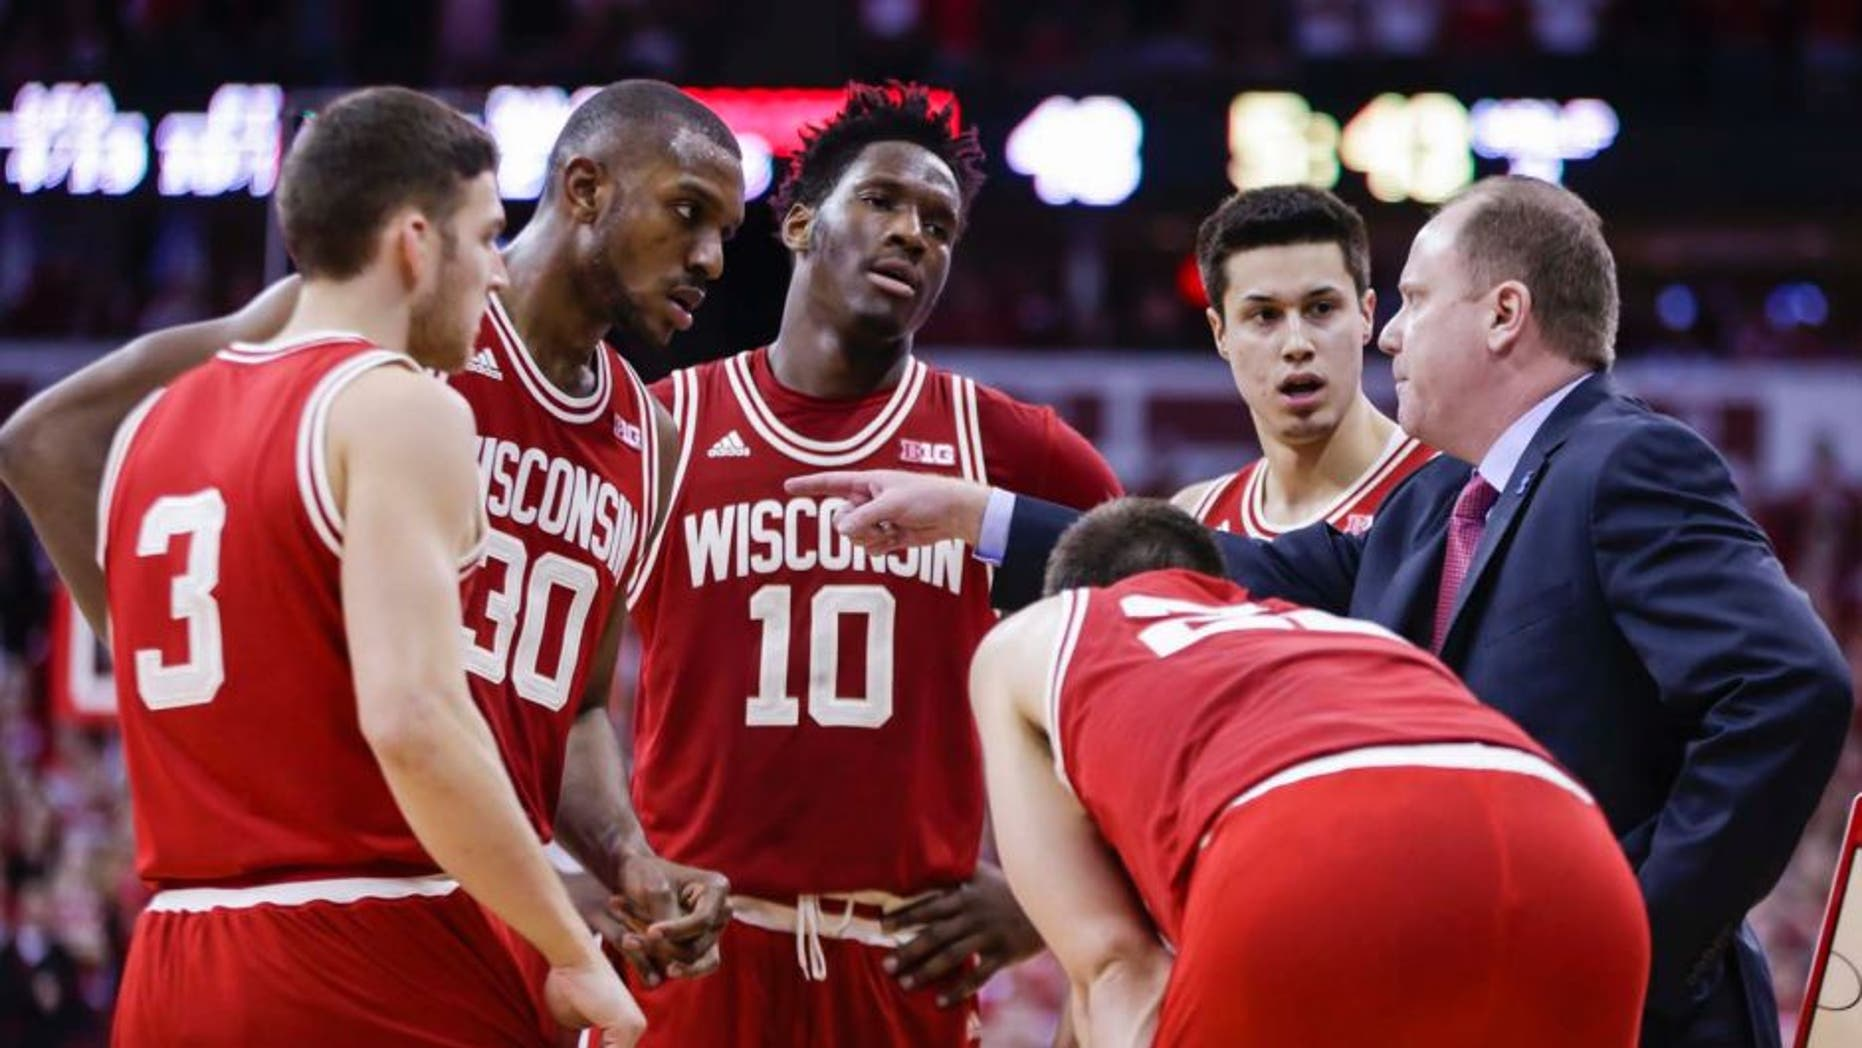 Sunday, Feb. 21: Wisconsin interim head coach Greg Gard (right) talks with (from left to right) Zak Showalter, Vitto Brown, Nigel Hayes, Bronson Koenig and Ethan Happ (bent over) during the second half against Illinois. Wisconsin won 69-60.